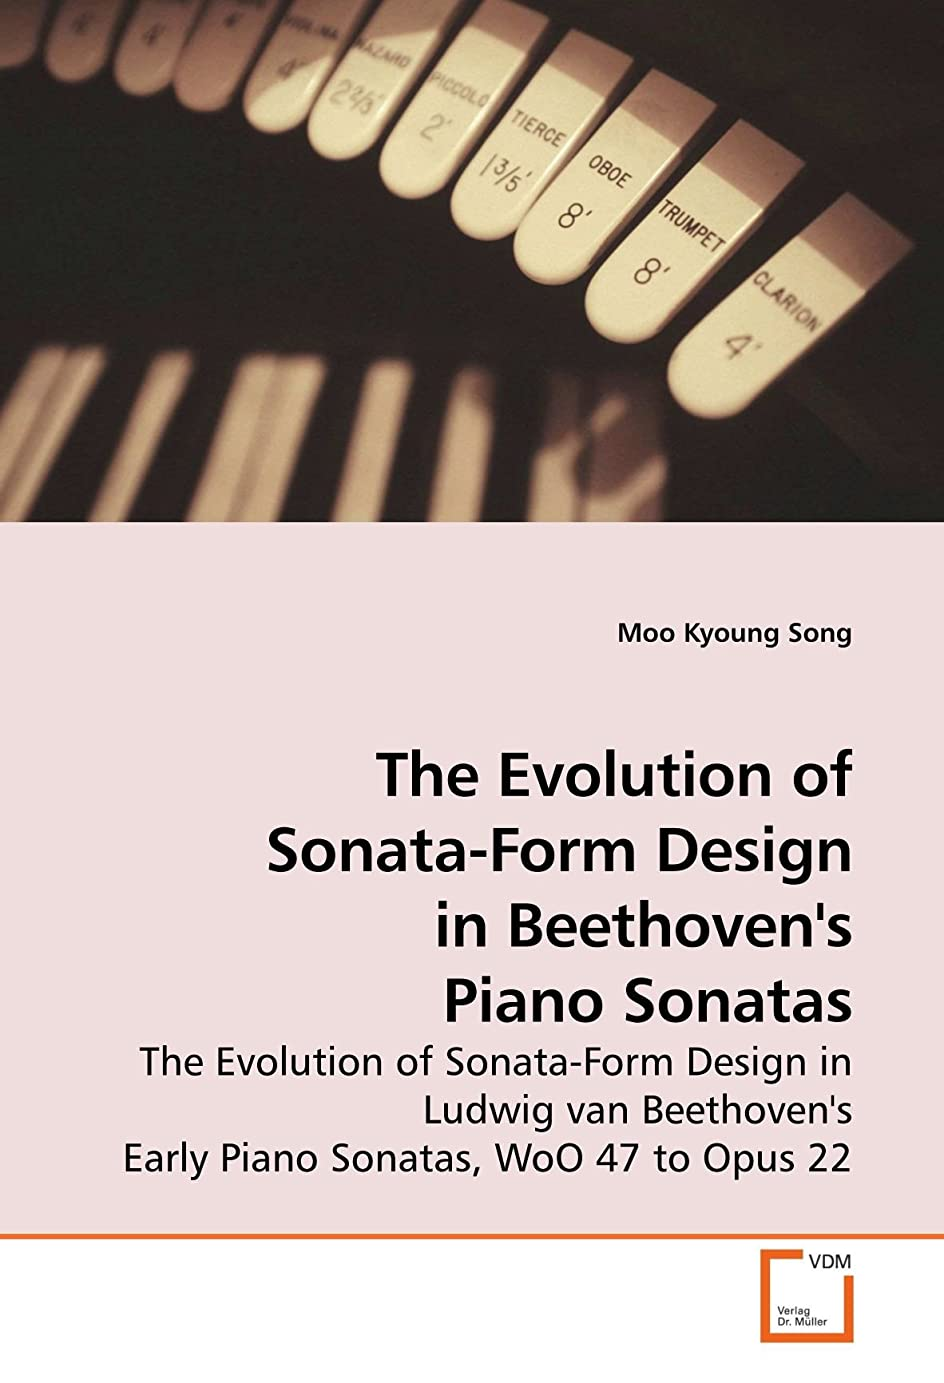 ひどい解説疎外するThe Evolution of Sonata-Form Design in Beethoven's Piano Sonatas: The Evolution of Sonata-form Design in Ludwig Van Beethoven's Early Piano Sonatas, Woo 47 to Opus 22